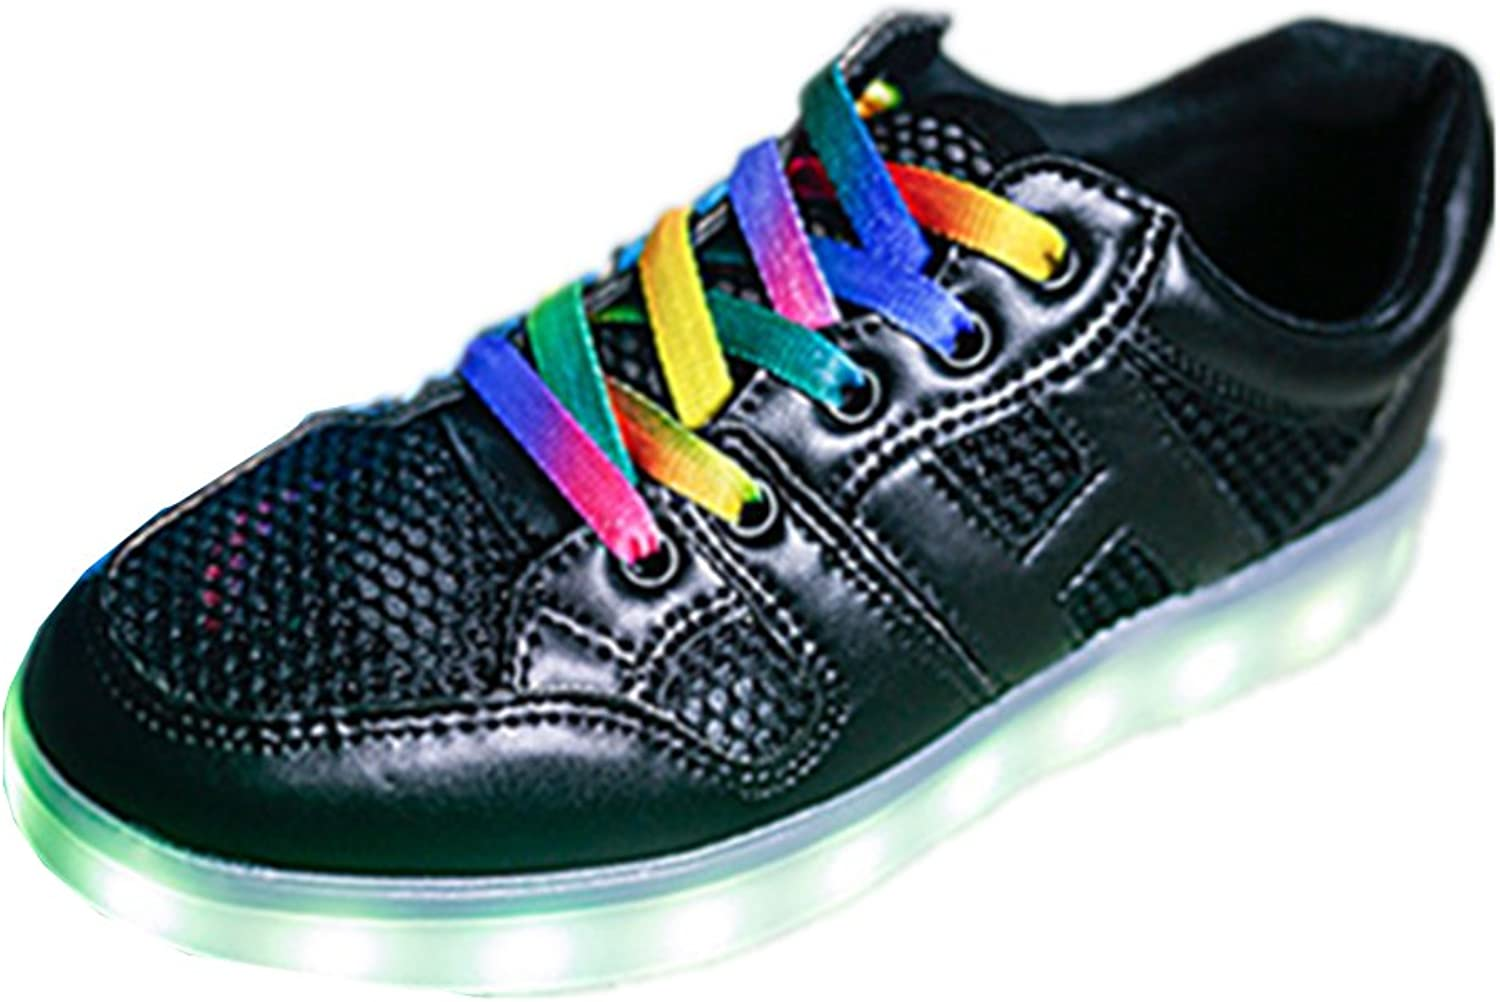 A2kmsmss5a Women & Girl LED shoes 7 colors Light Up colorful Sneakers USB Charging